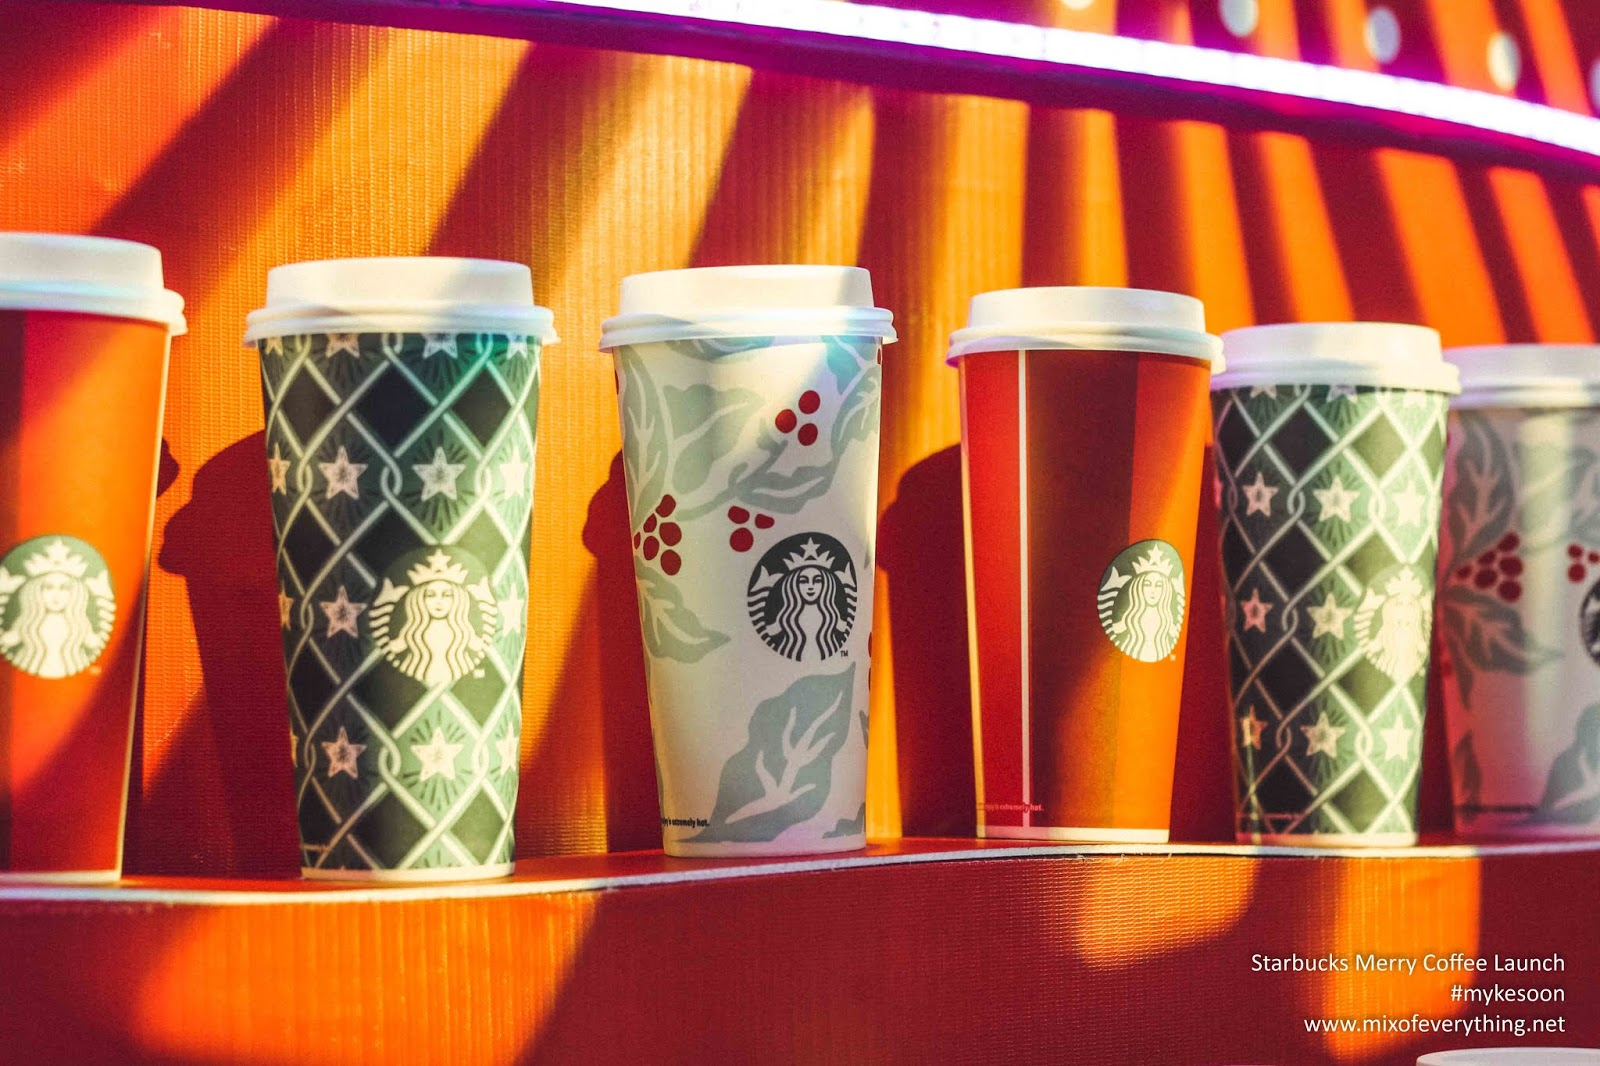 Starbucks Merry Coffee Launch 2019 Hello Welcome To My Blog